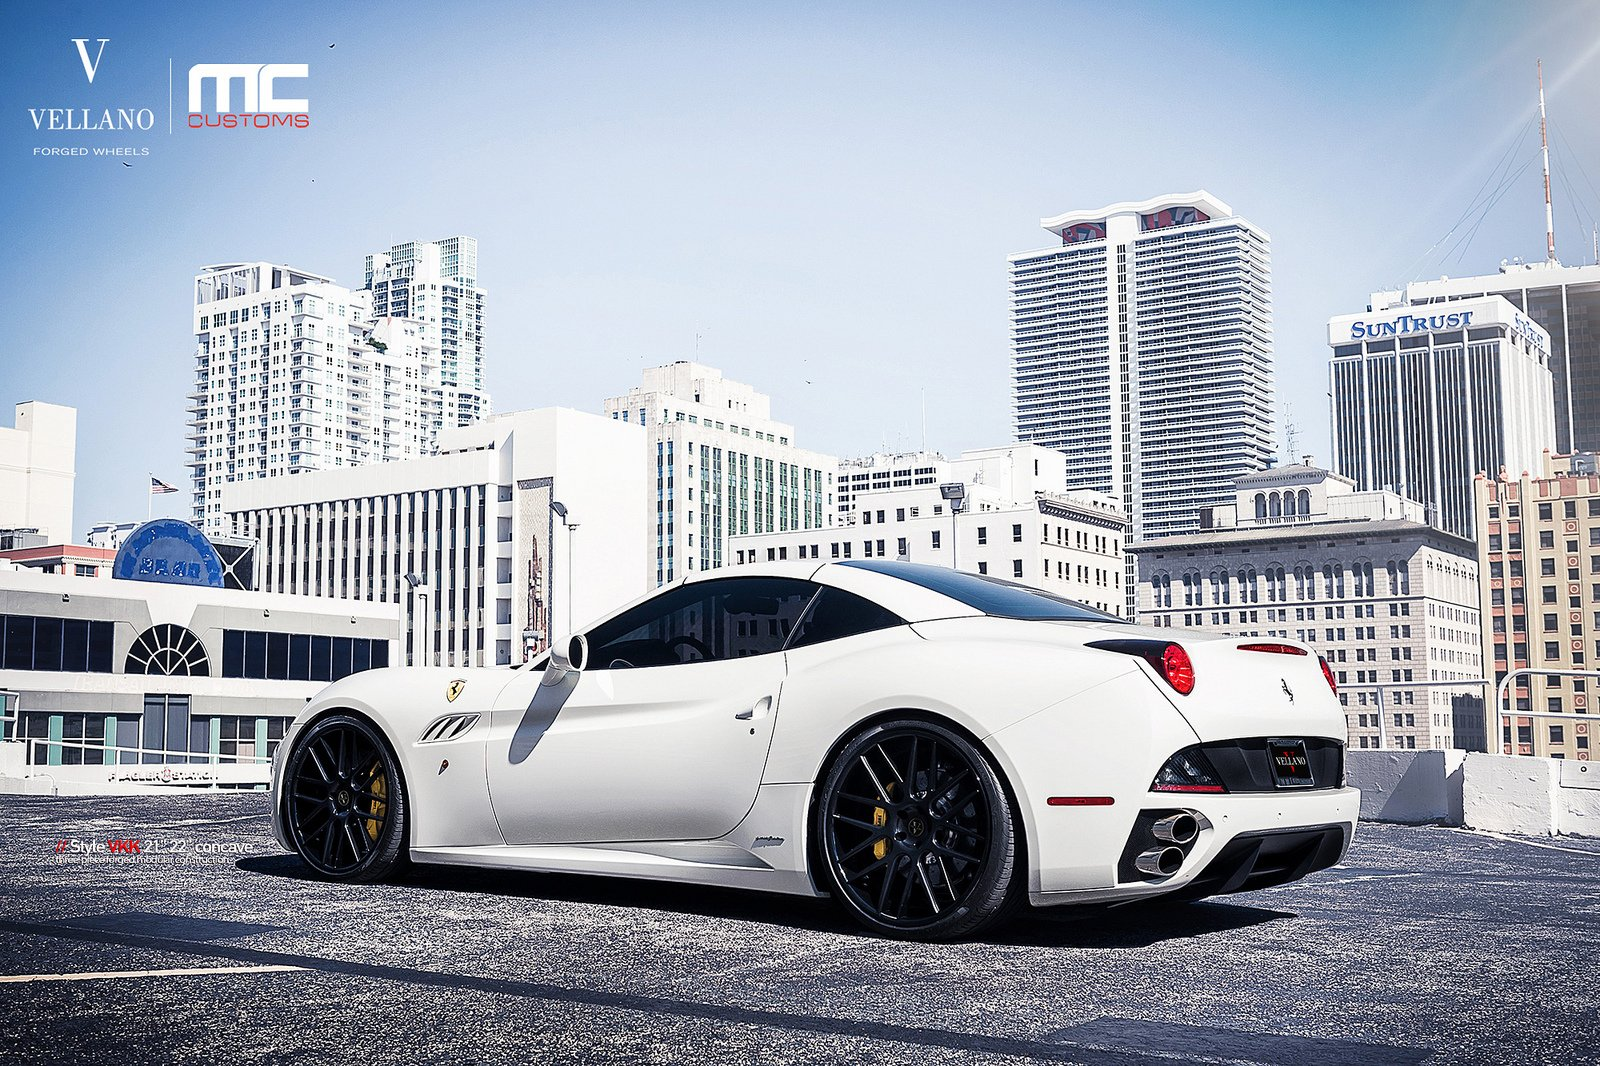 21x9 Wallpapers 71 Images: Ferrari California White Vellano Wheels Tuning Cars